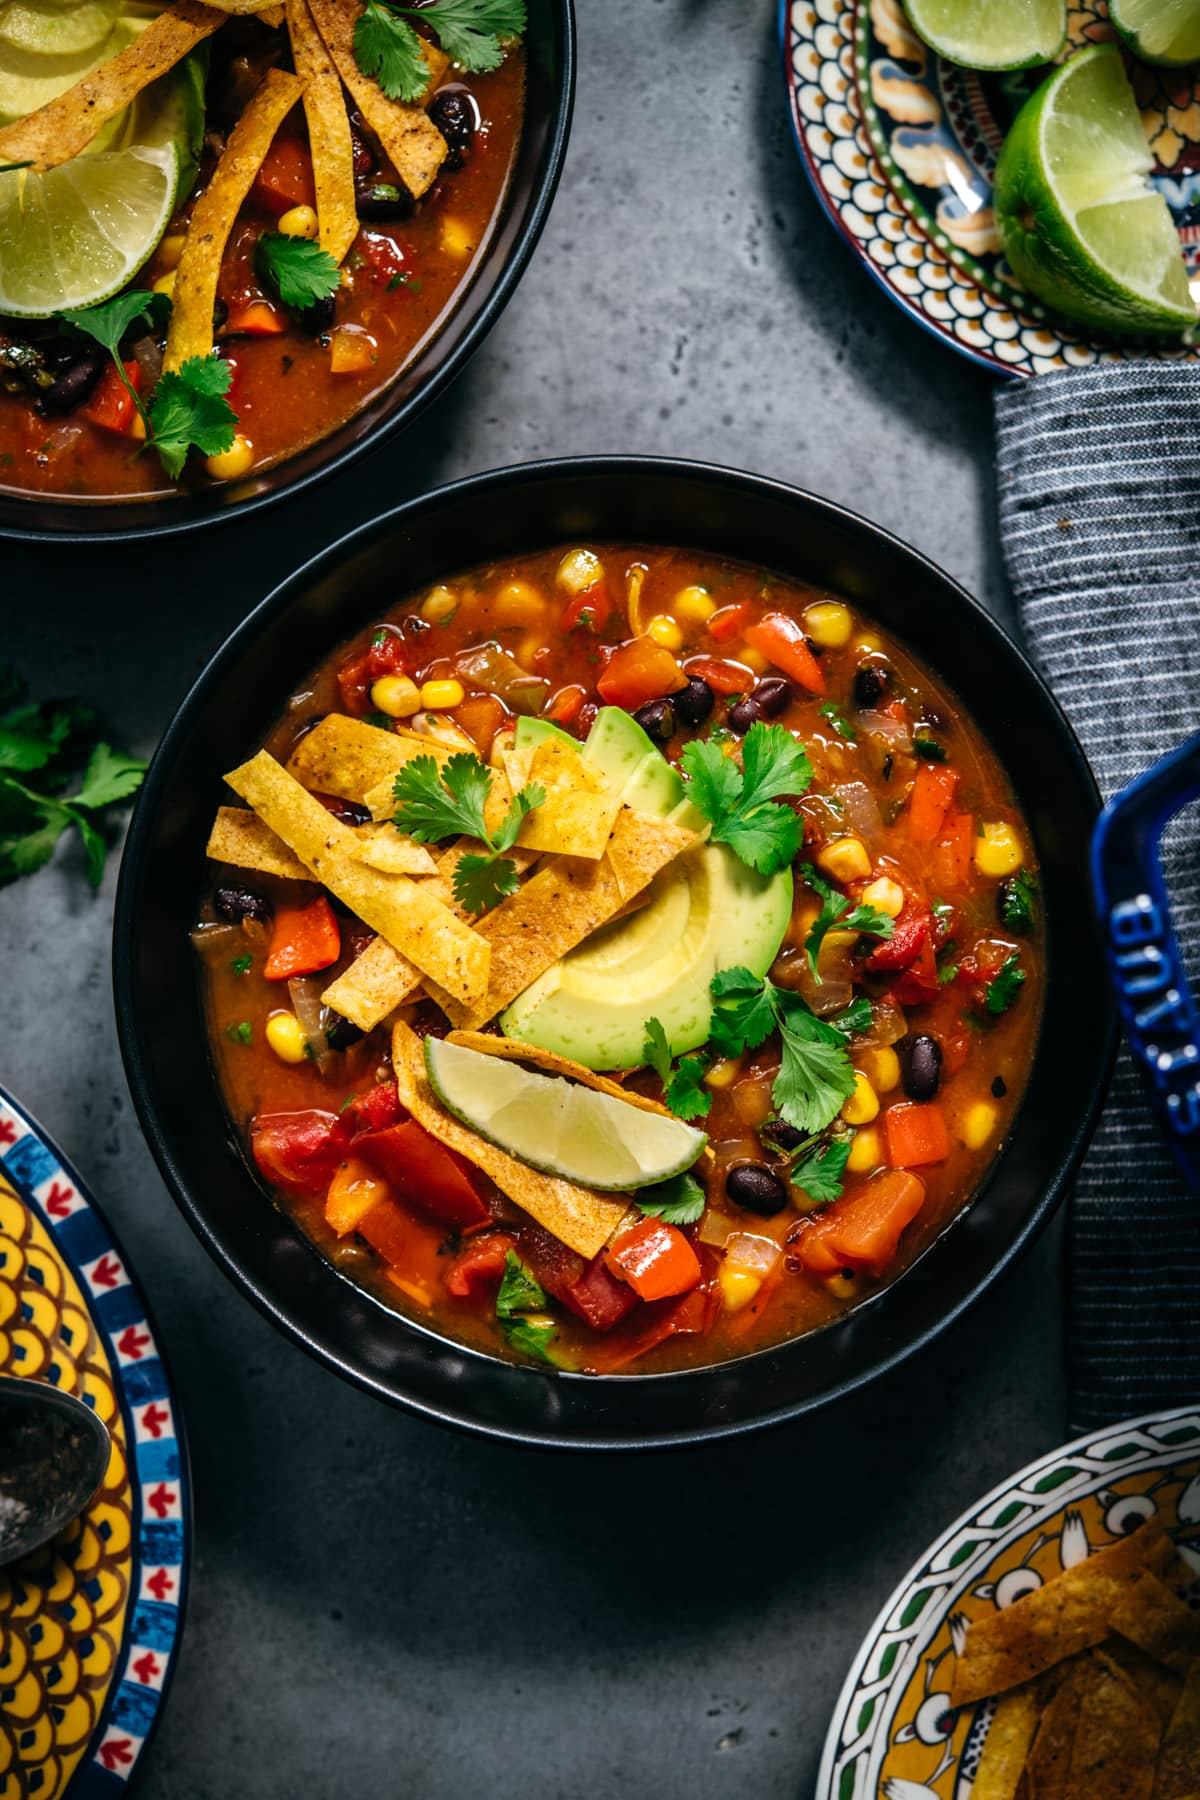 overhead view of vegan tortilla soup in black bowls topped with avocado, tortilla strips and lime.